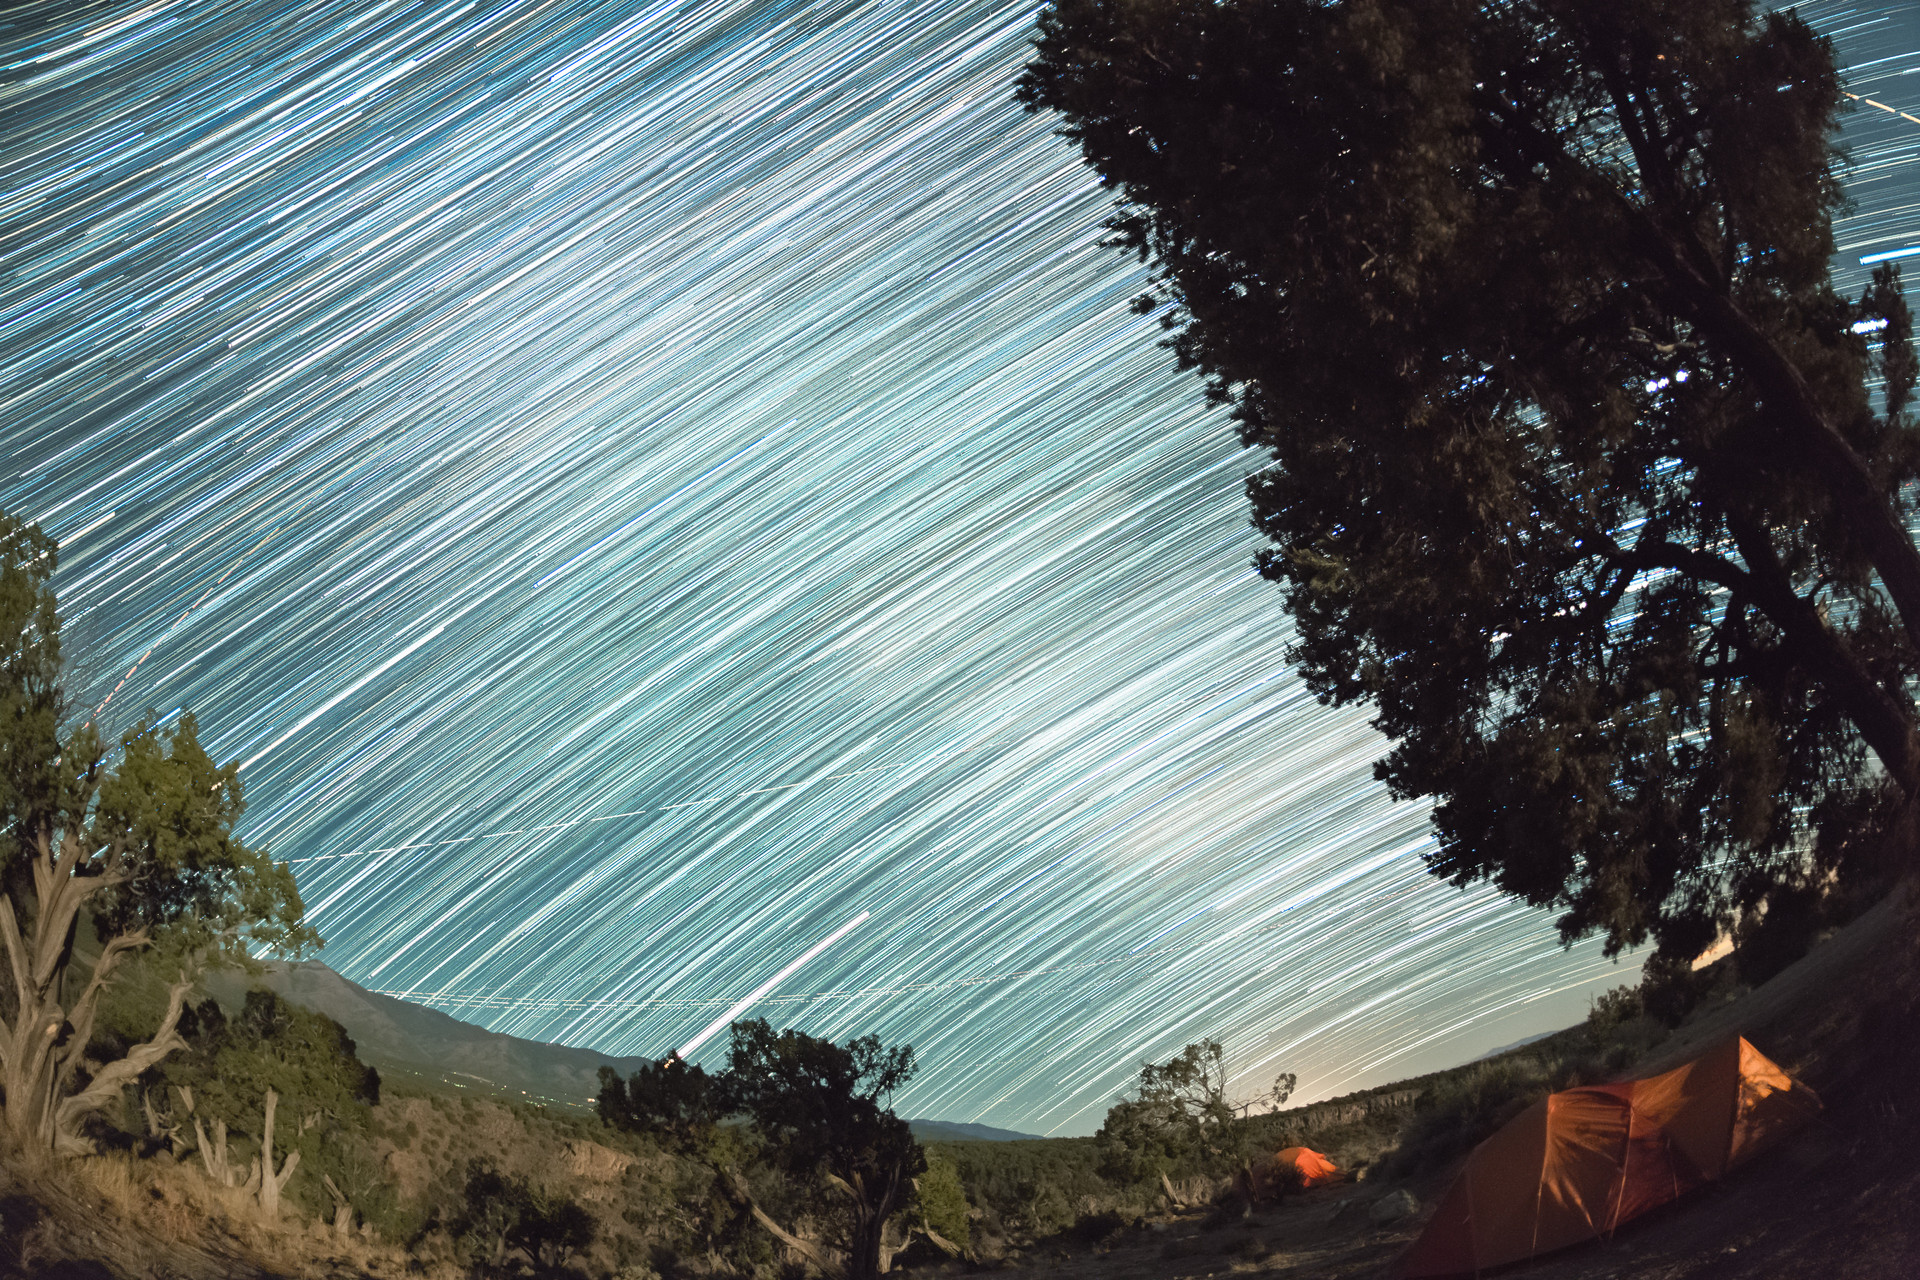 Star trail image of the apparent motion of the stars in the sky over our campsite in the Río Grande del Norte National Monument.